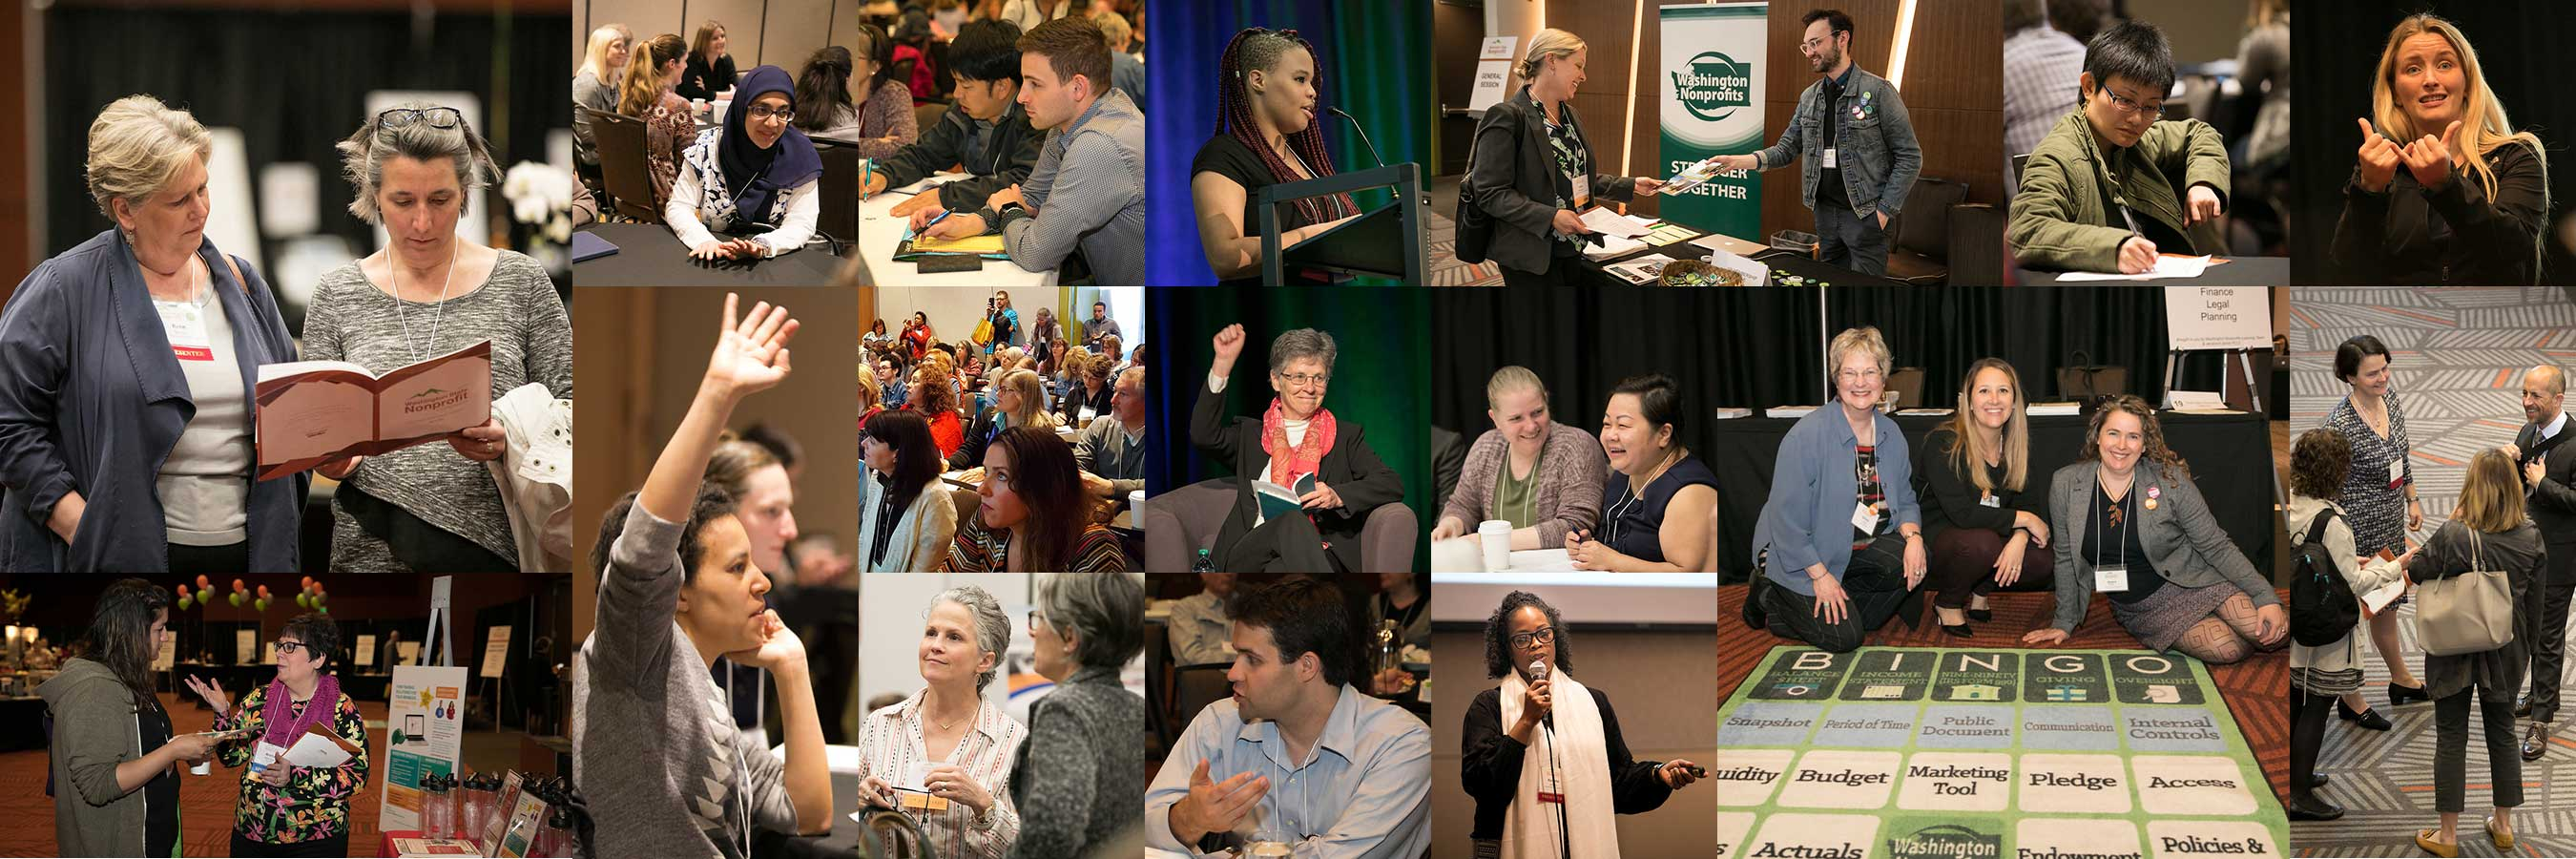 Attendees from the Washington State Nonprofit Conference